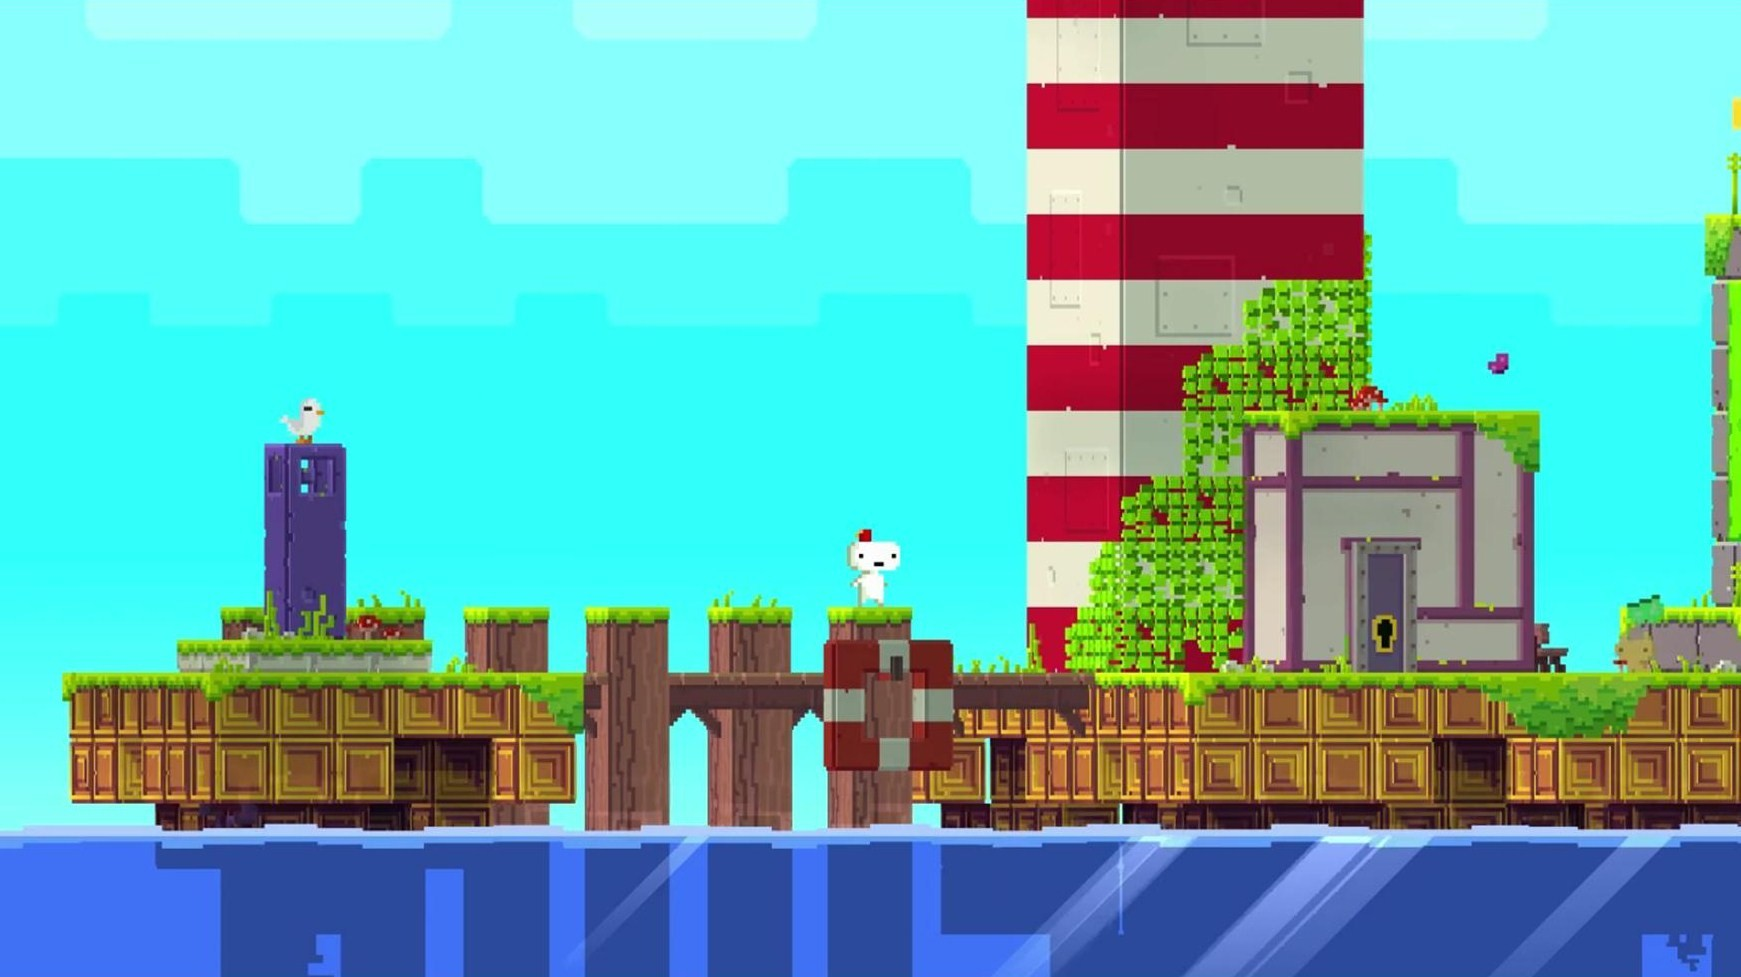 'Fez' being ported to other consoles in 2013